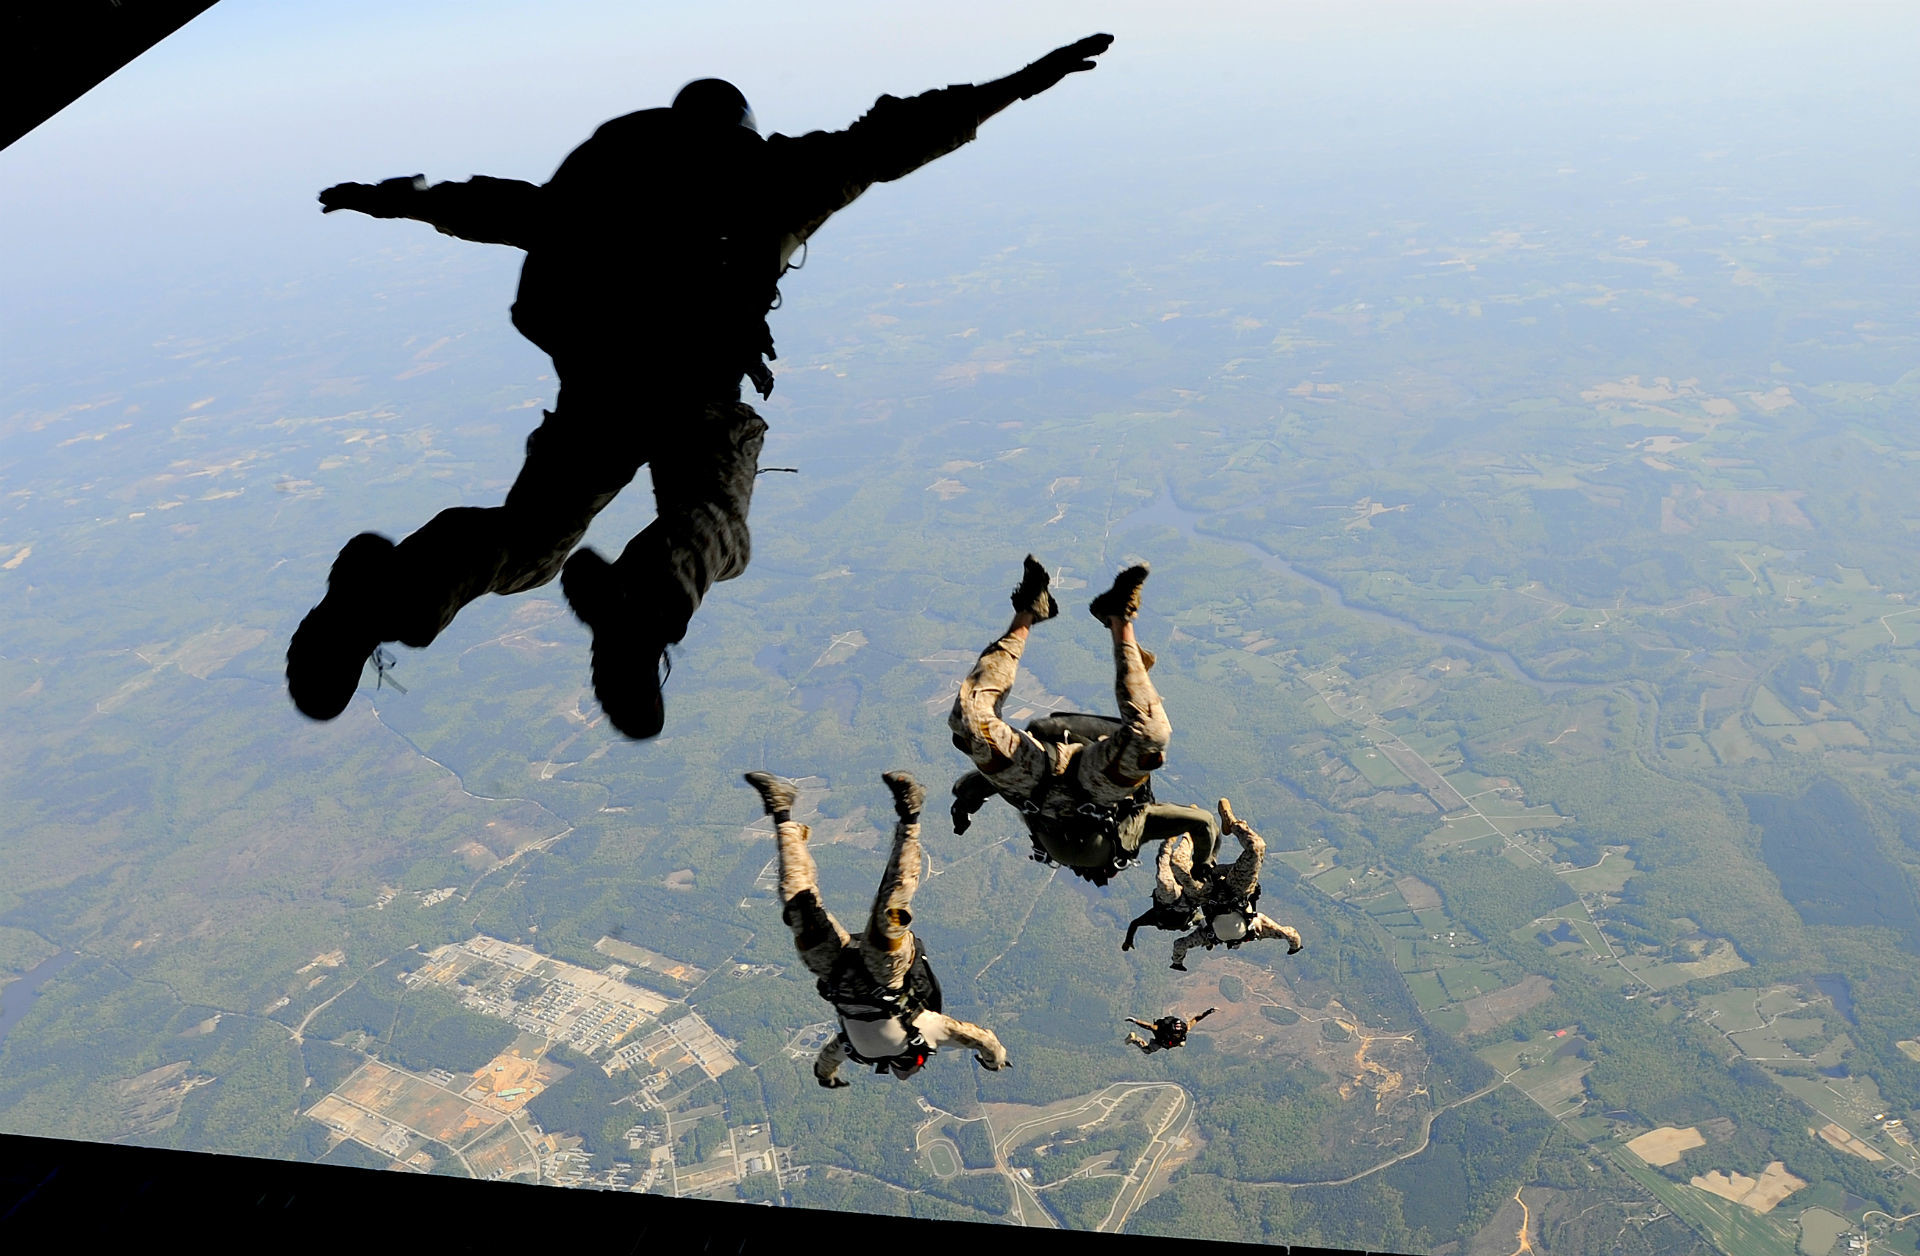 1920x1256 Military - Soldier Skydiving Airplane Wallpaper